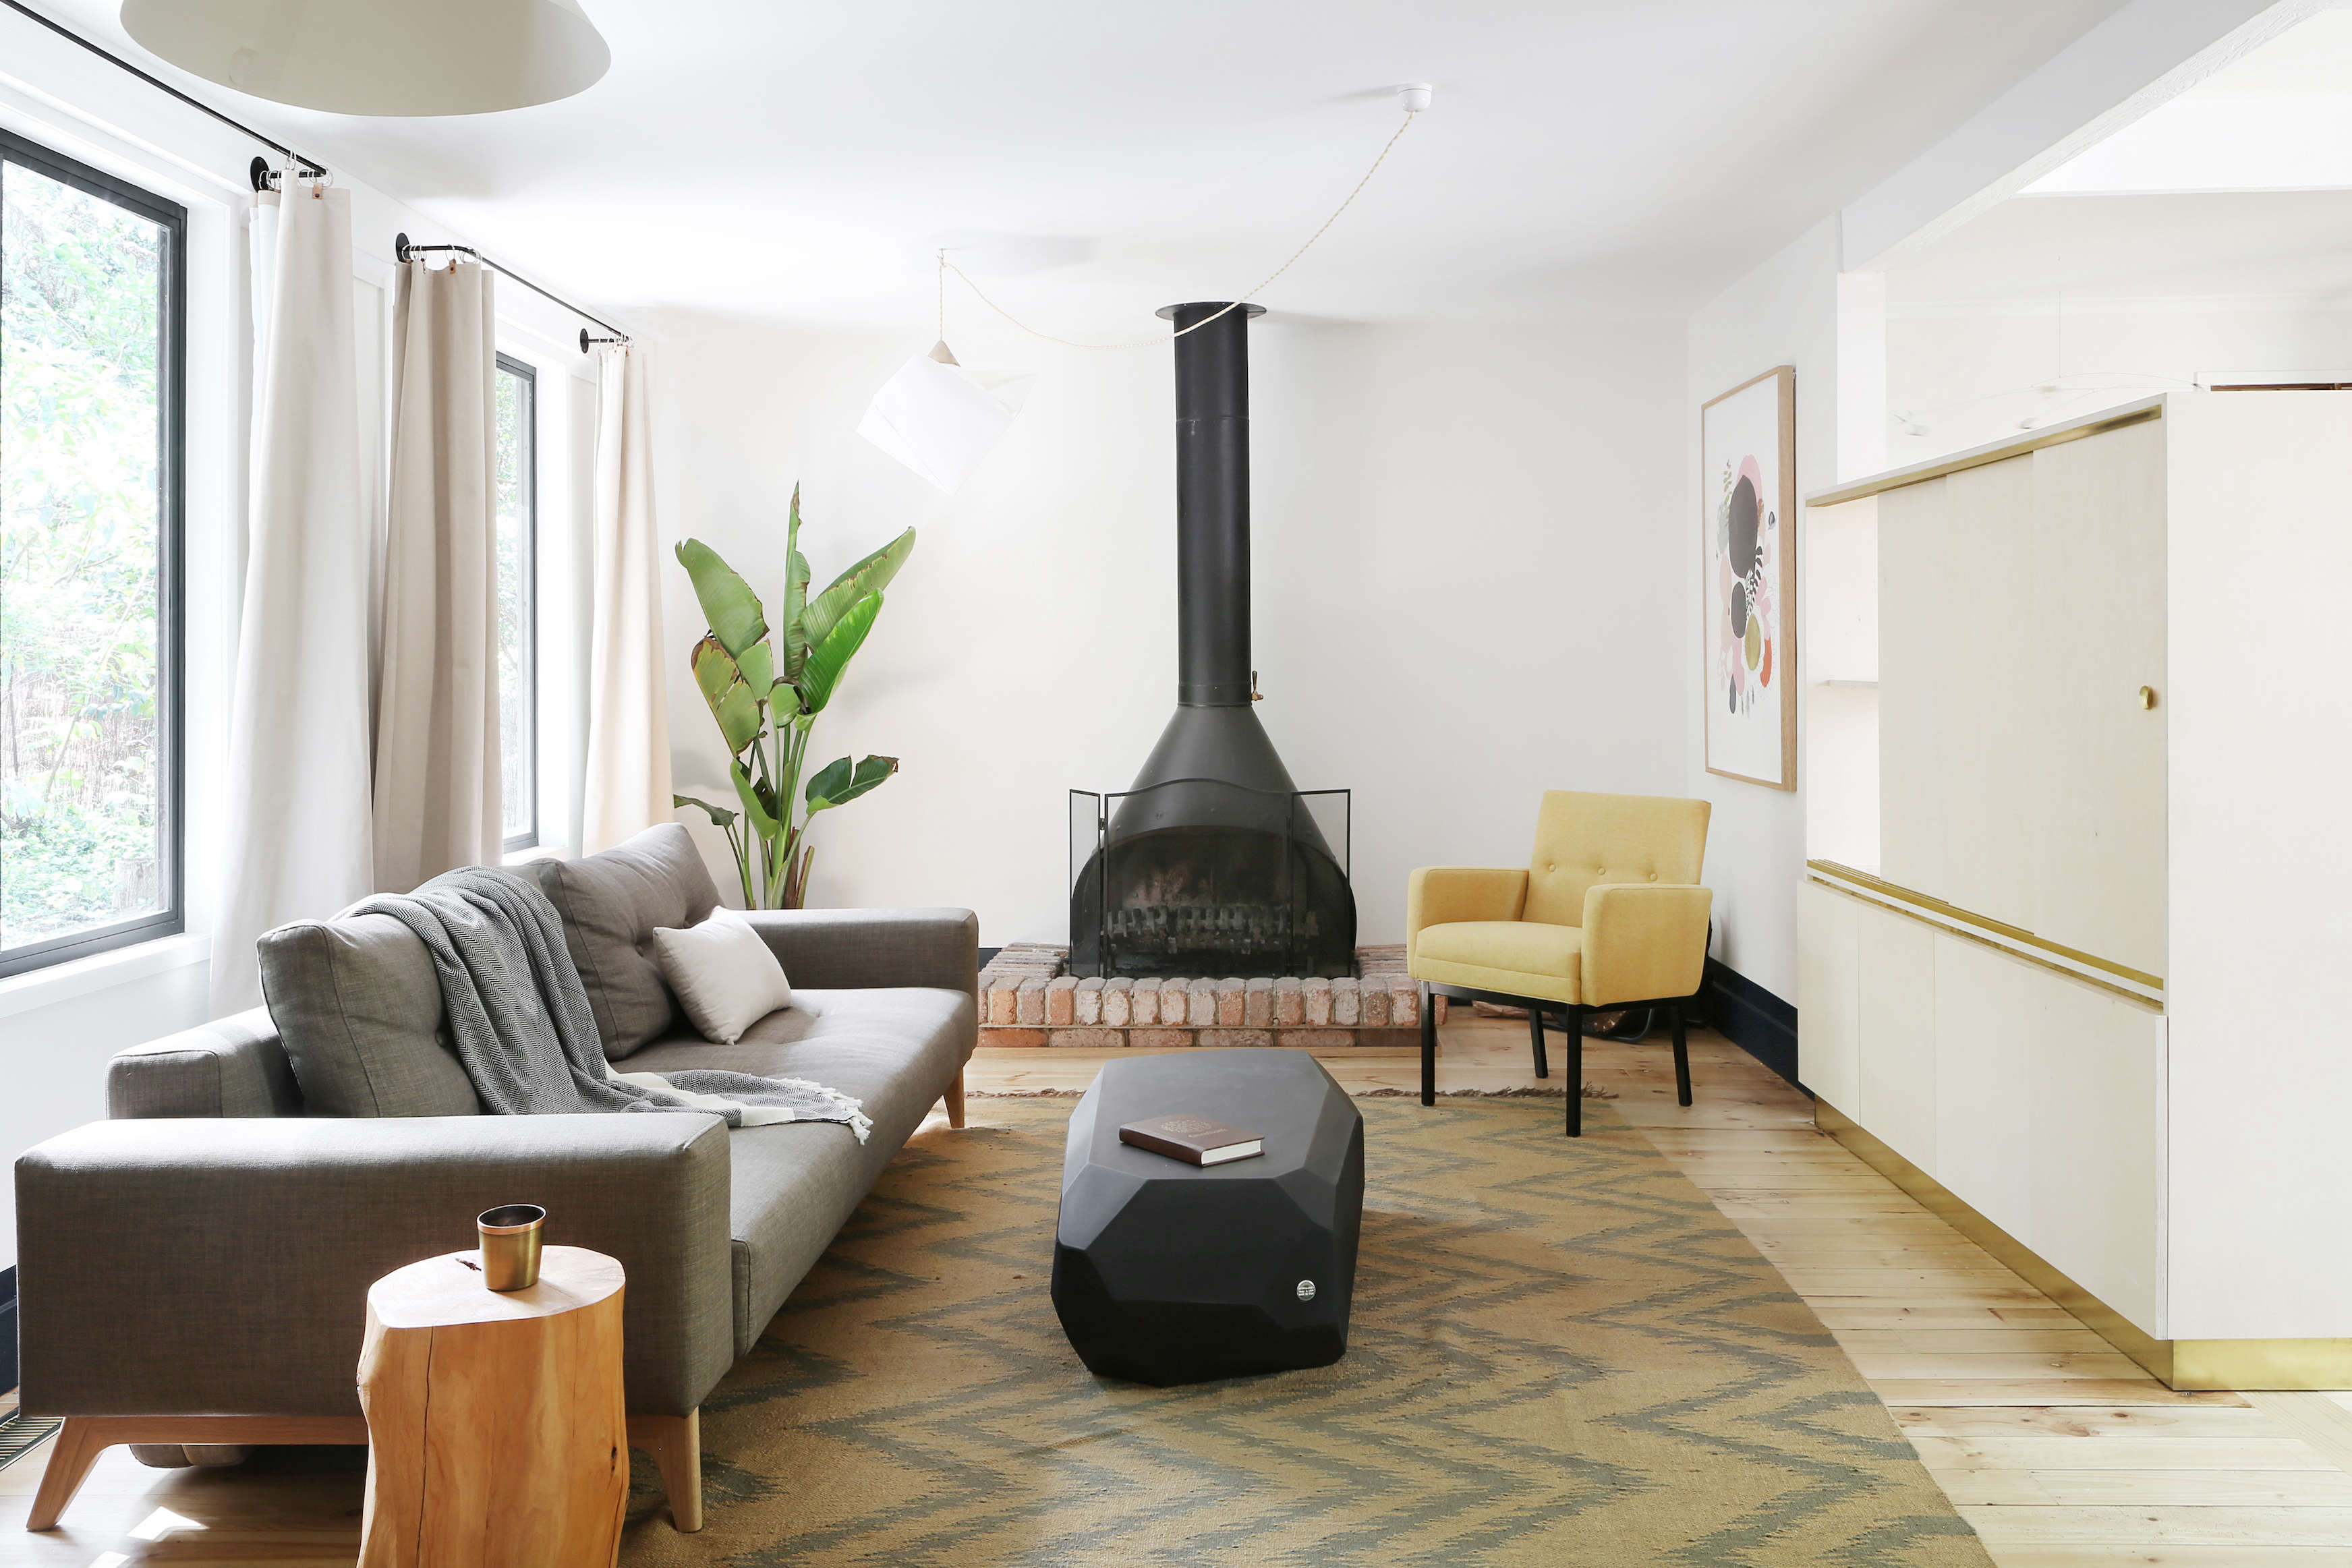 Jackie Winter Gardens, a guesthouse and artist residency outside Melbourne, Australia, designed by Searah Trotter of Hearth; Rhiannon Taylor photo| Remodelista